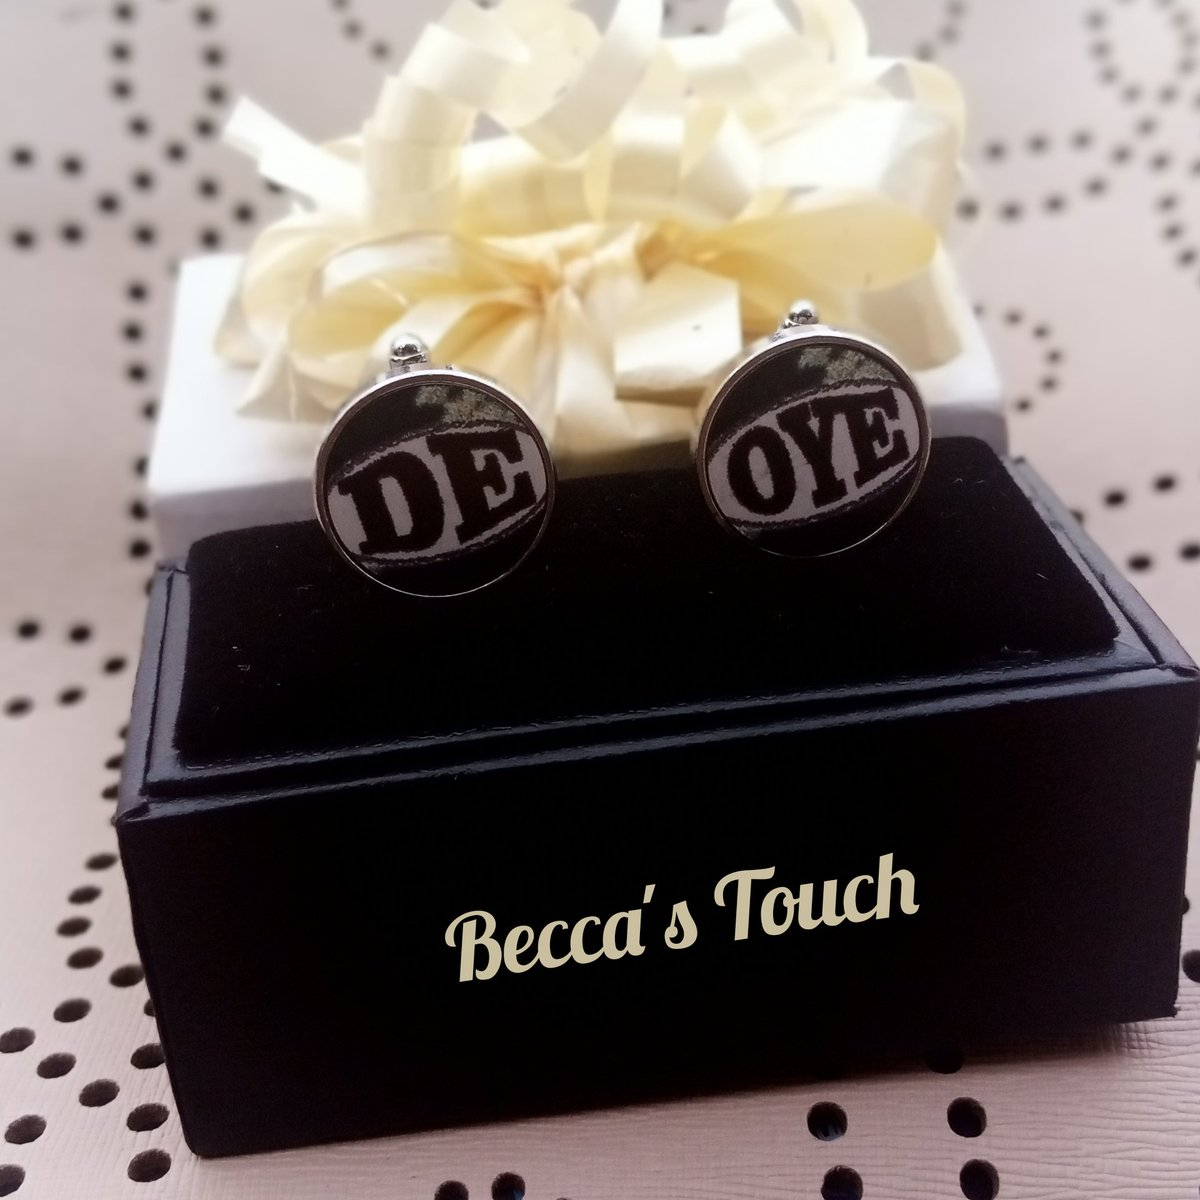 Little things counts,gift that special one something special today....  Customized Cufflinks now available @Beccas_Touch  Duration: 2 working days WhatsApp: 07082099013pic.twitter.com/3pqAQvGW58